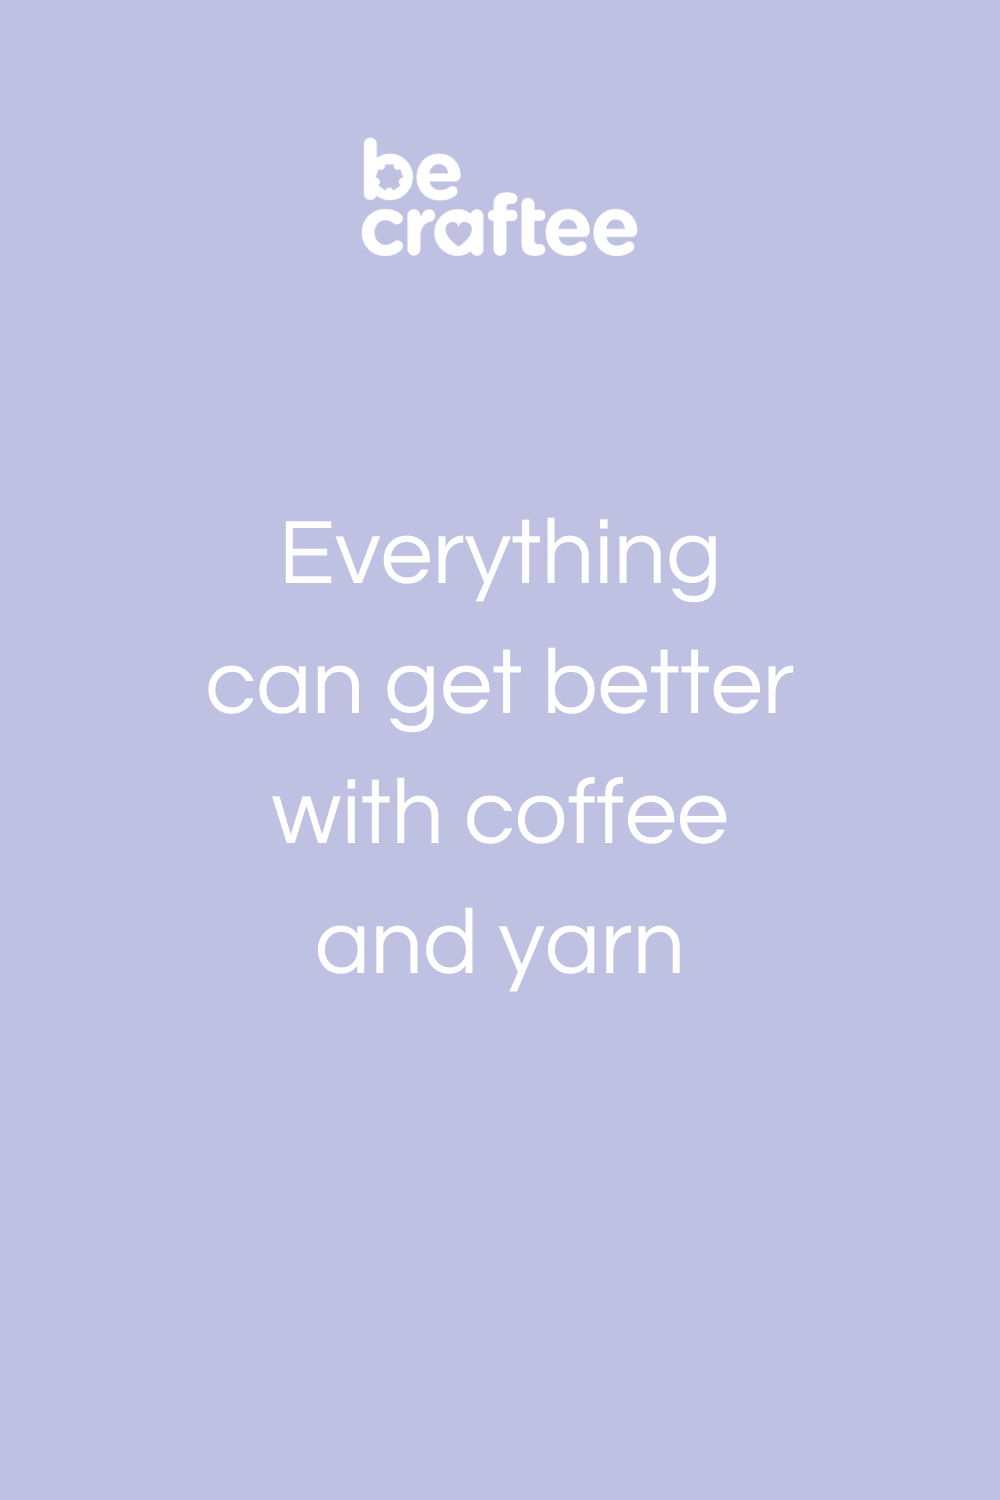 Crochet Quotes And Crochet Funny Quotes For Motivation If You Are A Crocher Lover Create Crochet Projects In 2020 Funny Crocheting Quotes Crochet Quote Crochet Humor